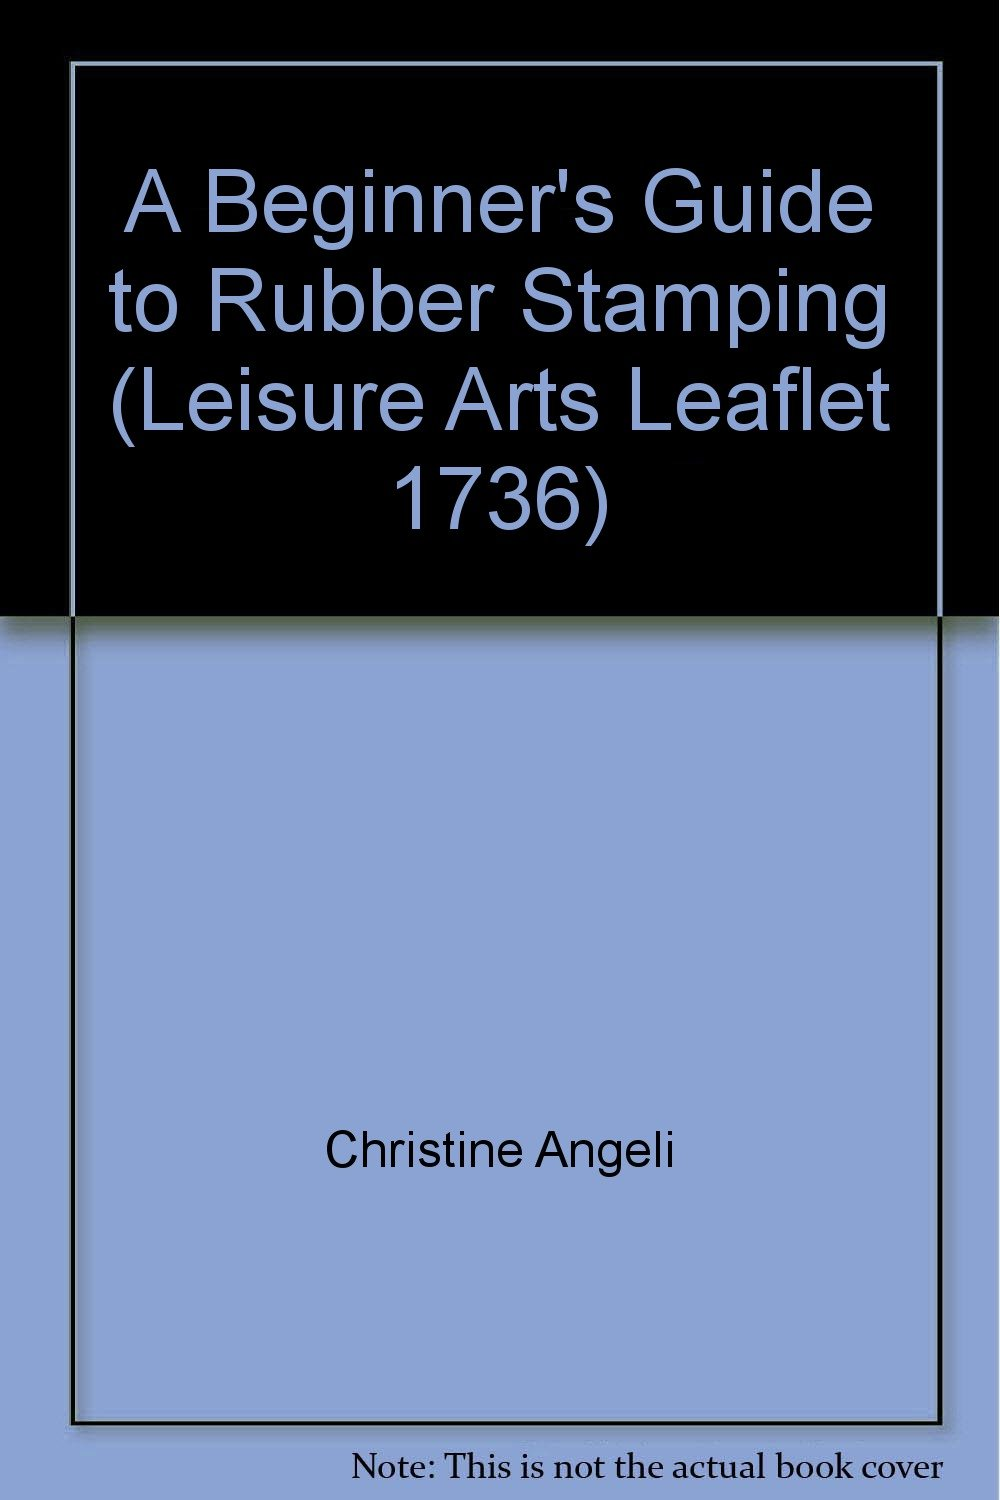 Rubber Stamping (a beginner's guide, 1736)